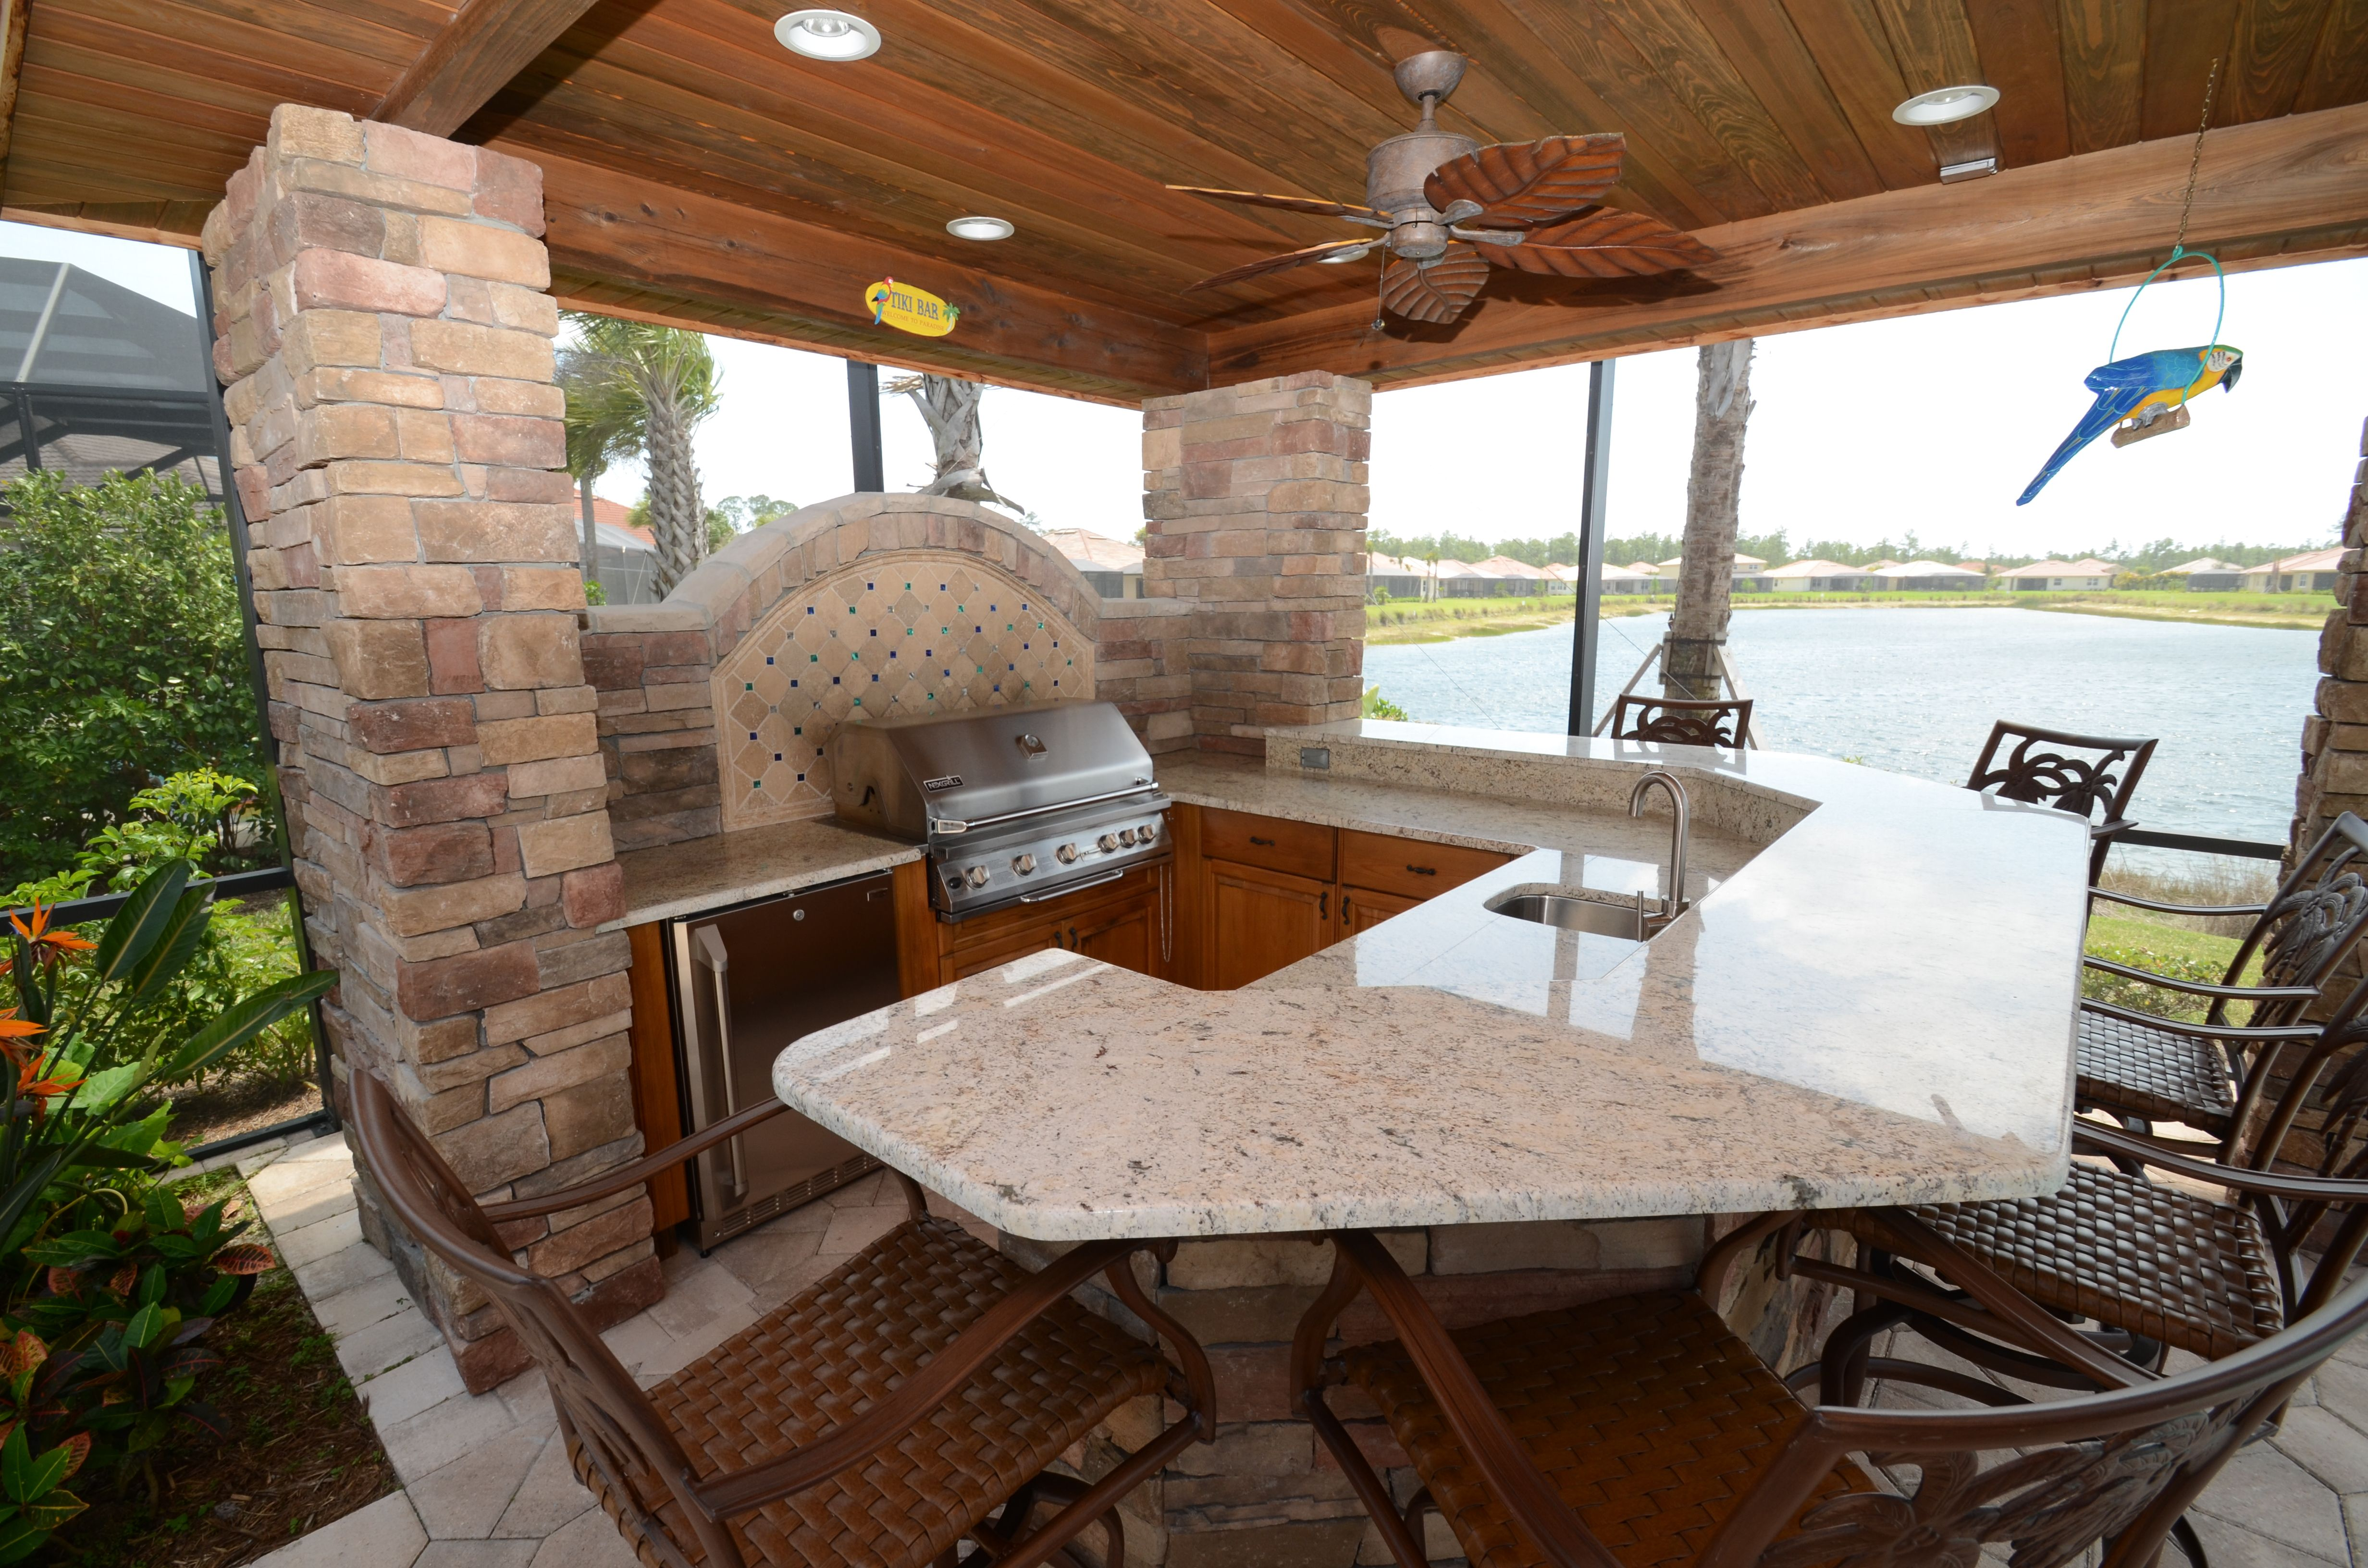 Outdoor Kitchen On The Water By Da Vinci Cabinetry In Naples Fl Kitchen And Bath Remodeling Cabinet Design Kitchen Design